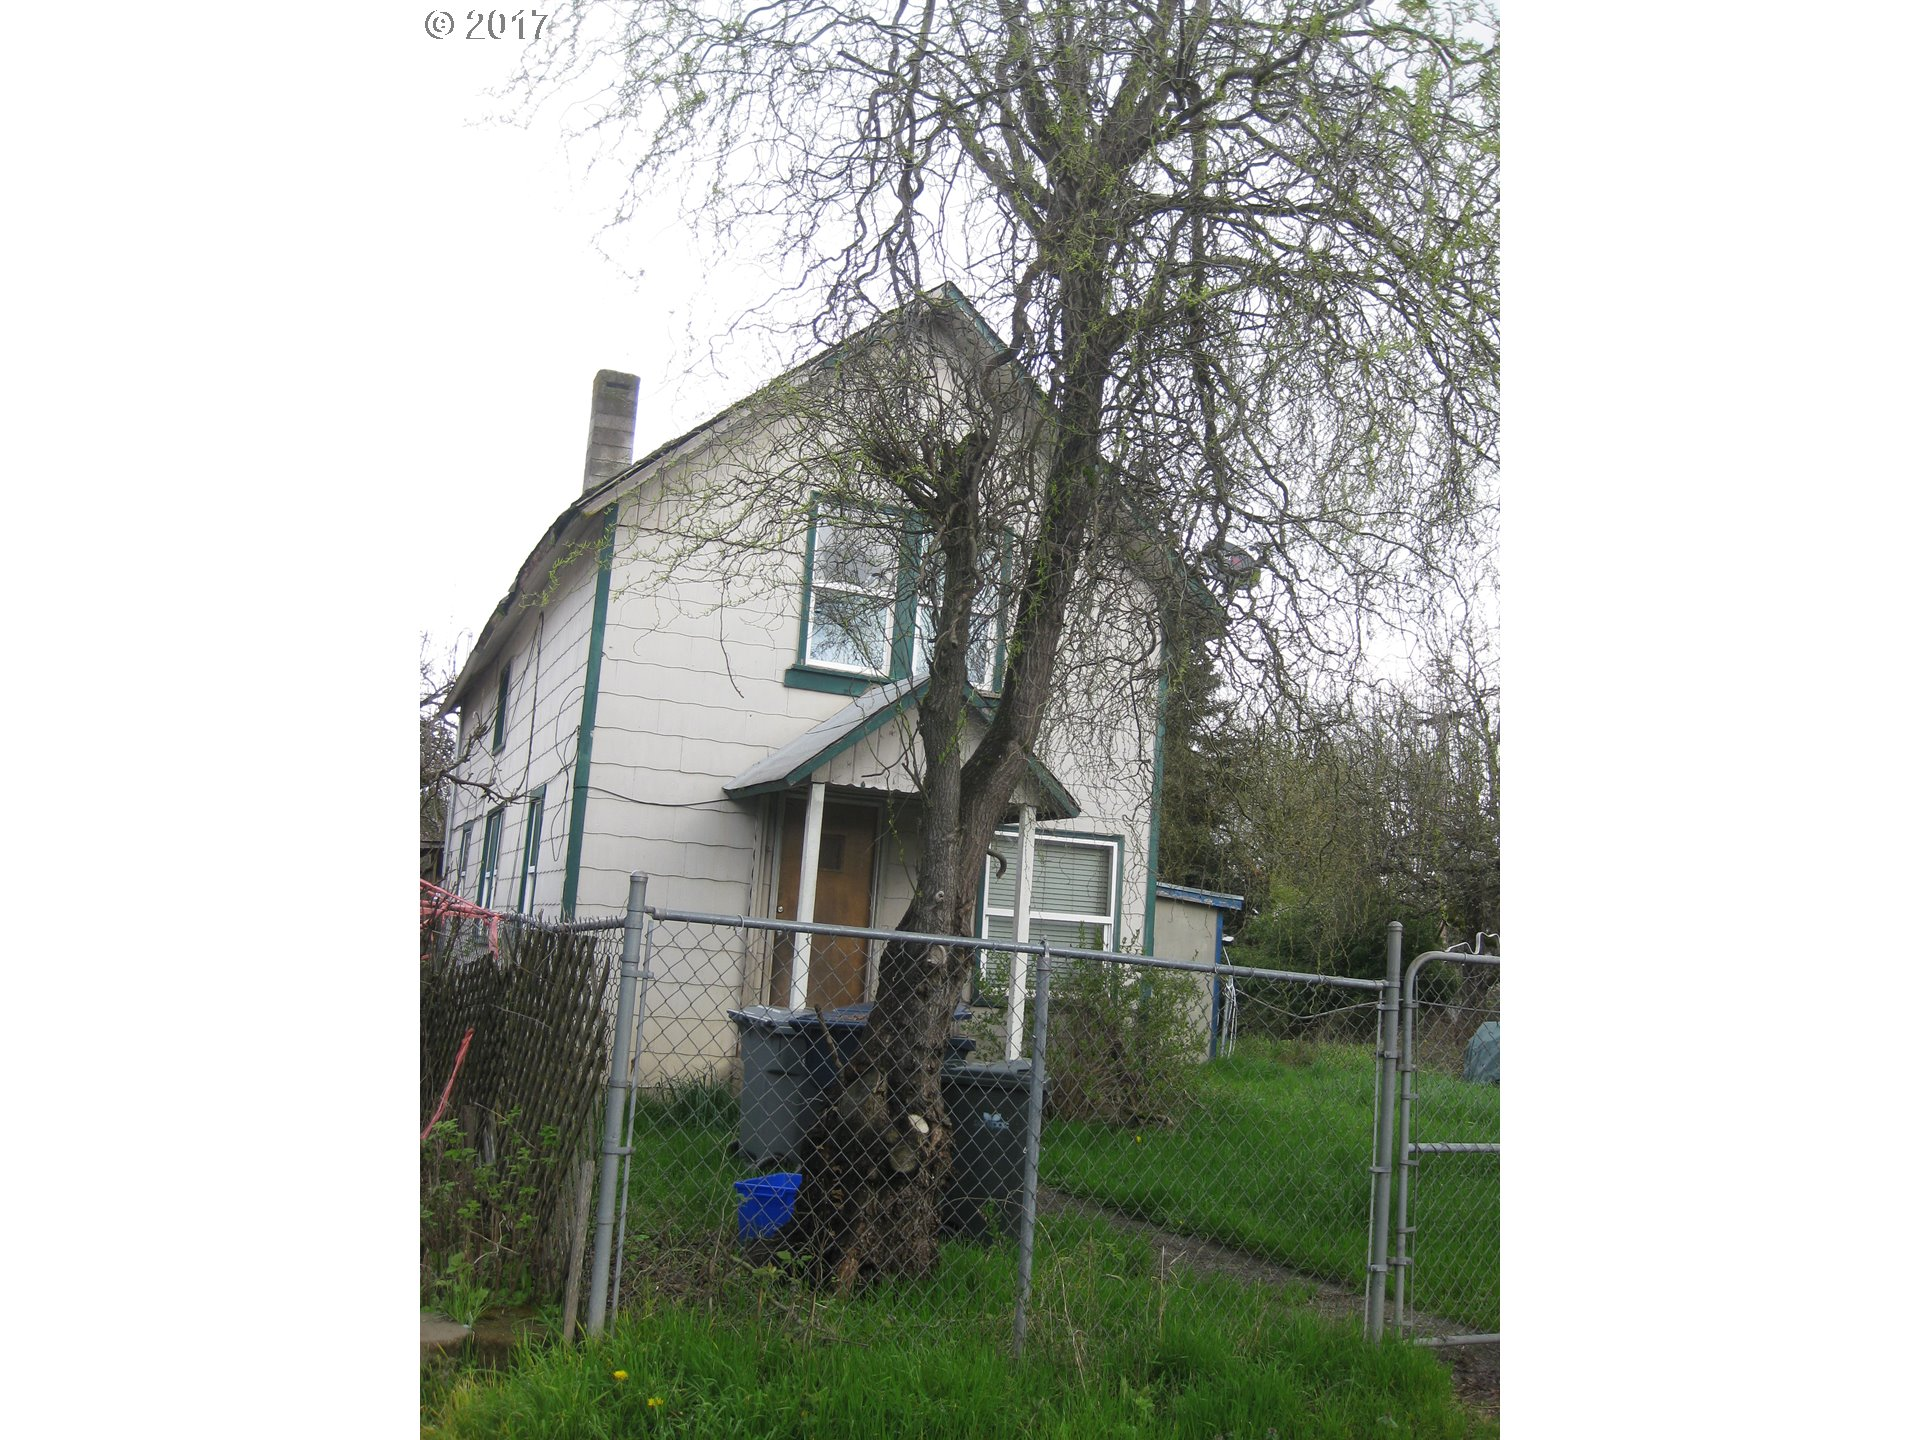 4024 E 16TH AVE, Eugene, OR 97403